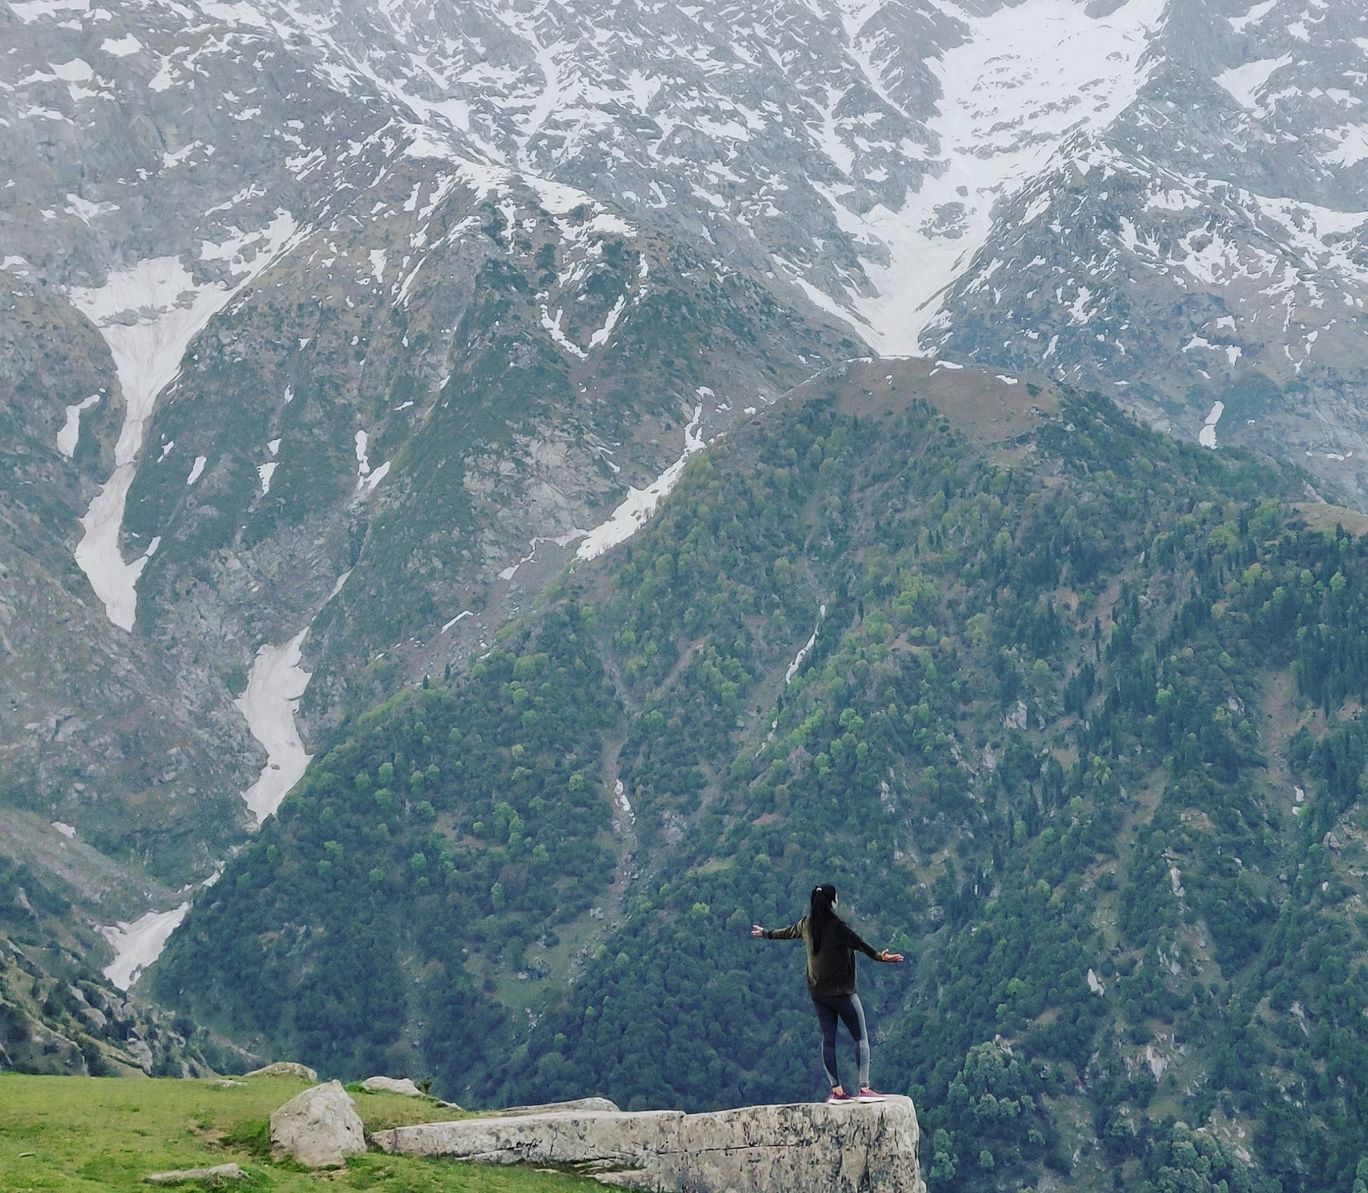 Photo of Triund By divyani singh